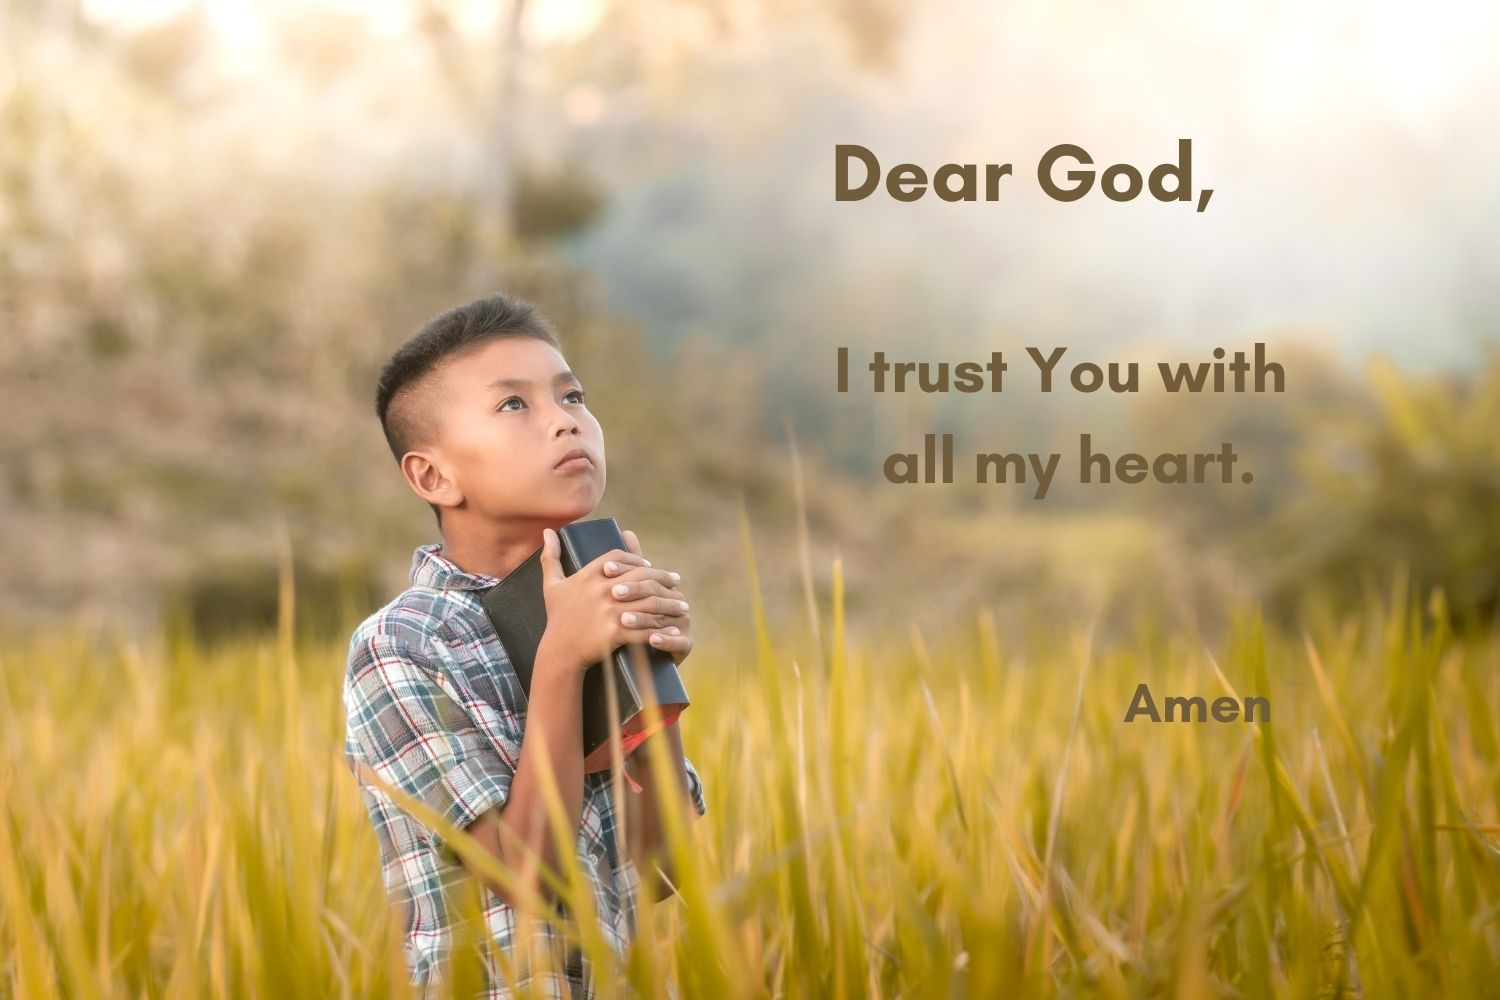 'In the same way that we demonstrate our trust in parents and teachers by doing what they ask of us, we show our trust in God by following God's way